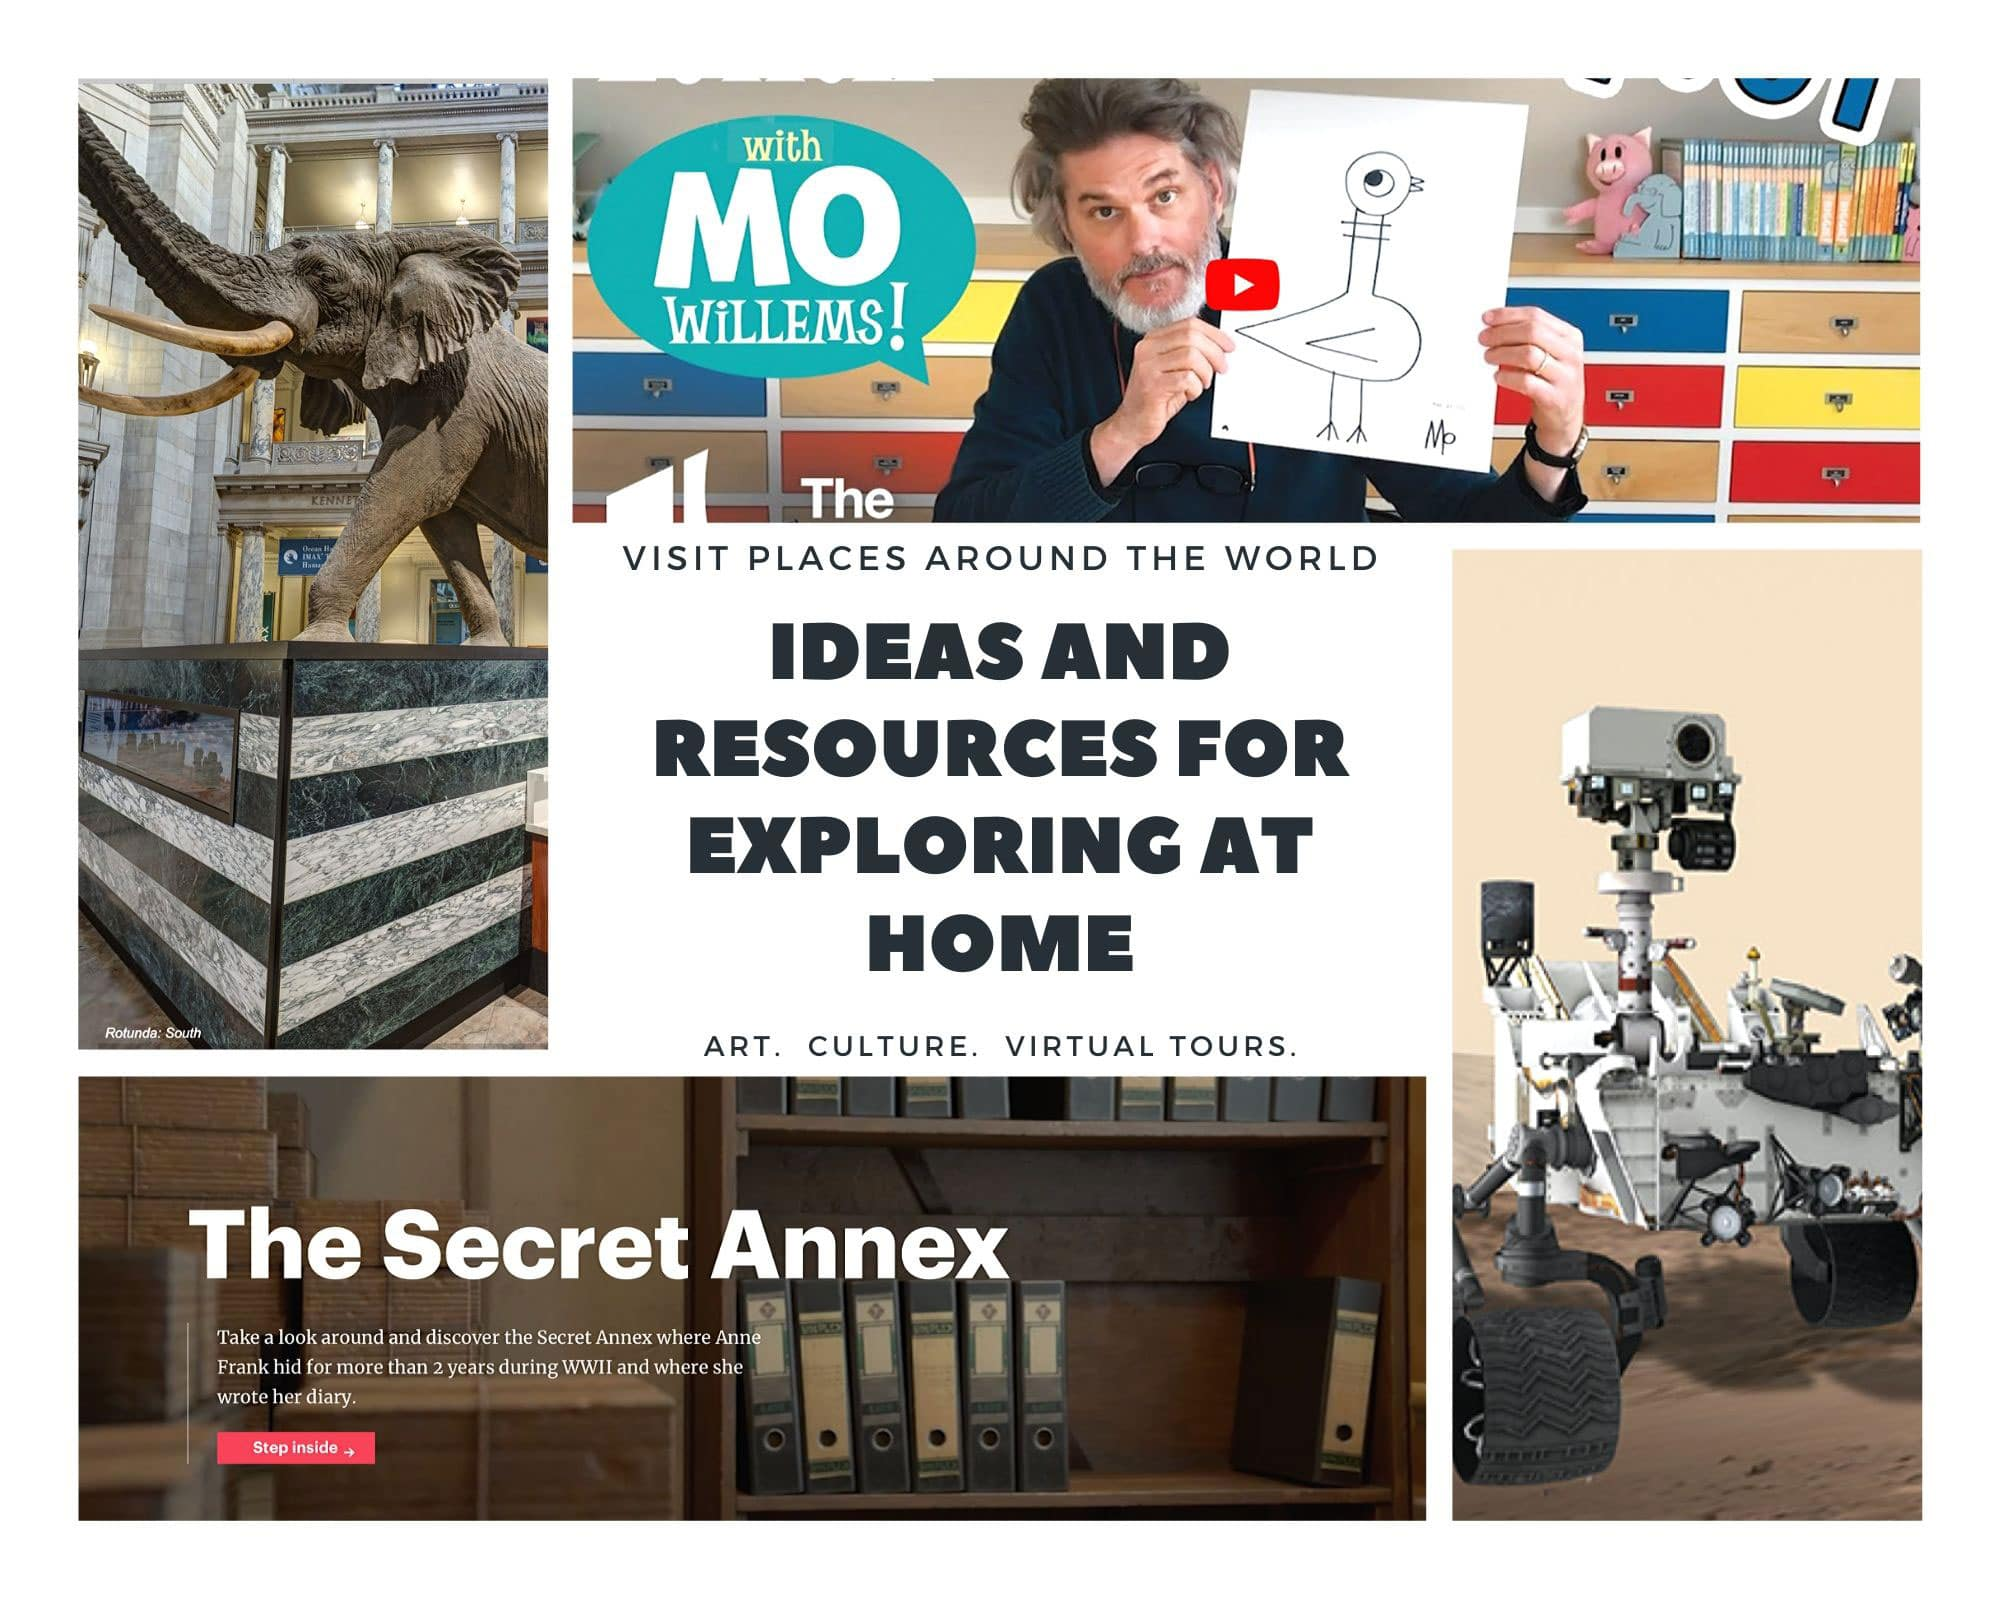 photo collage with MARS robot, Mo Willems holding up a pigeon drawing, text for the Secret Annex, and a prehistoric elephant on a black and white pillar.